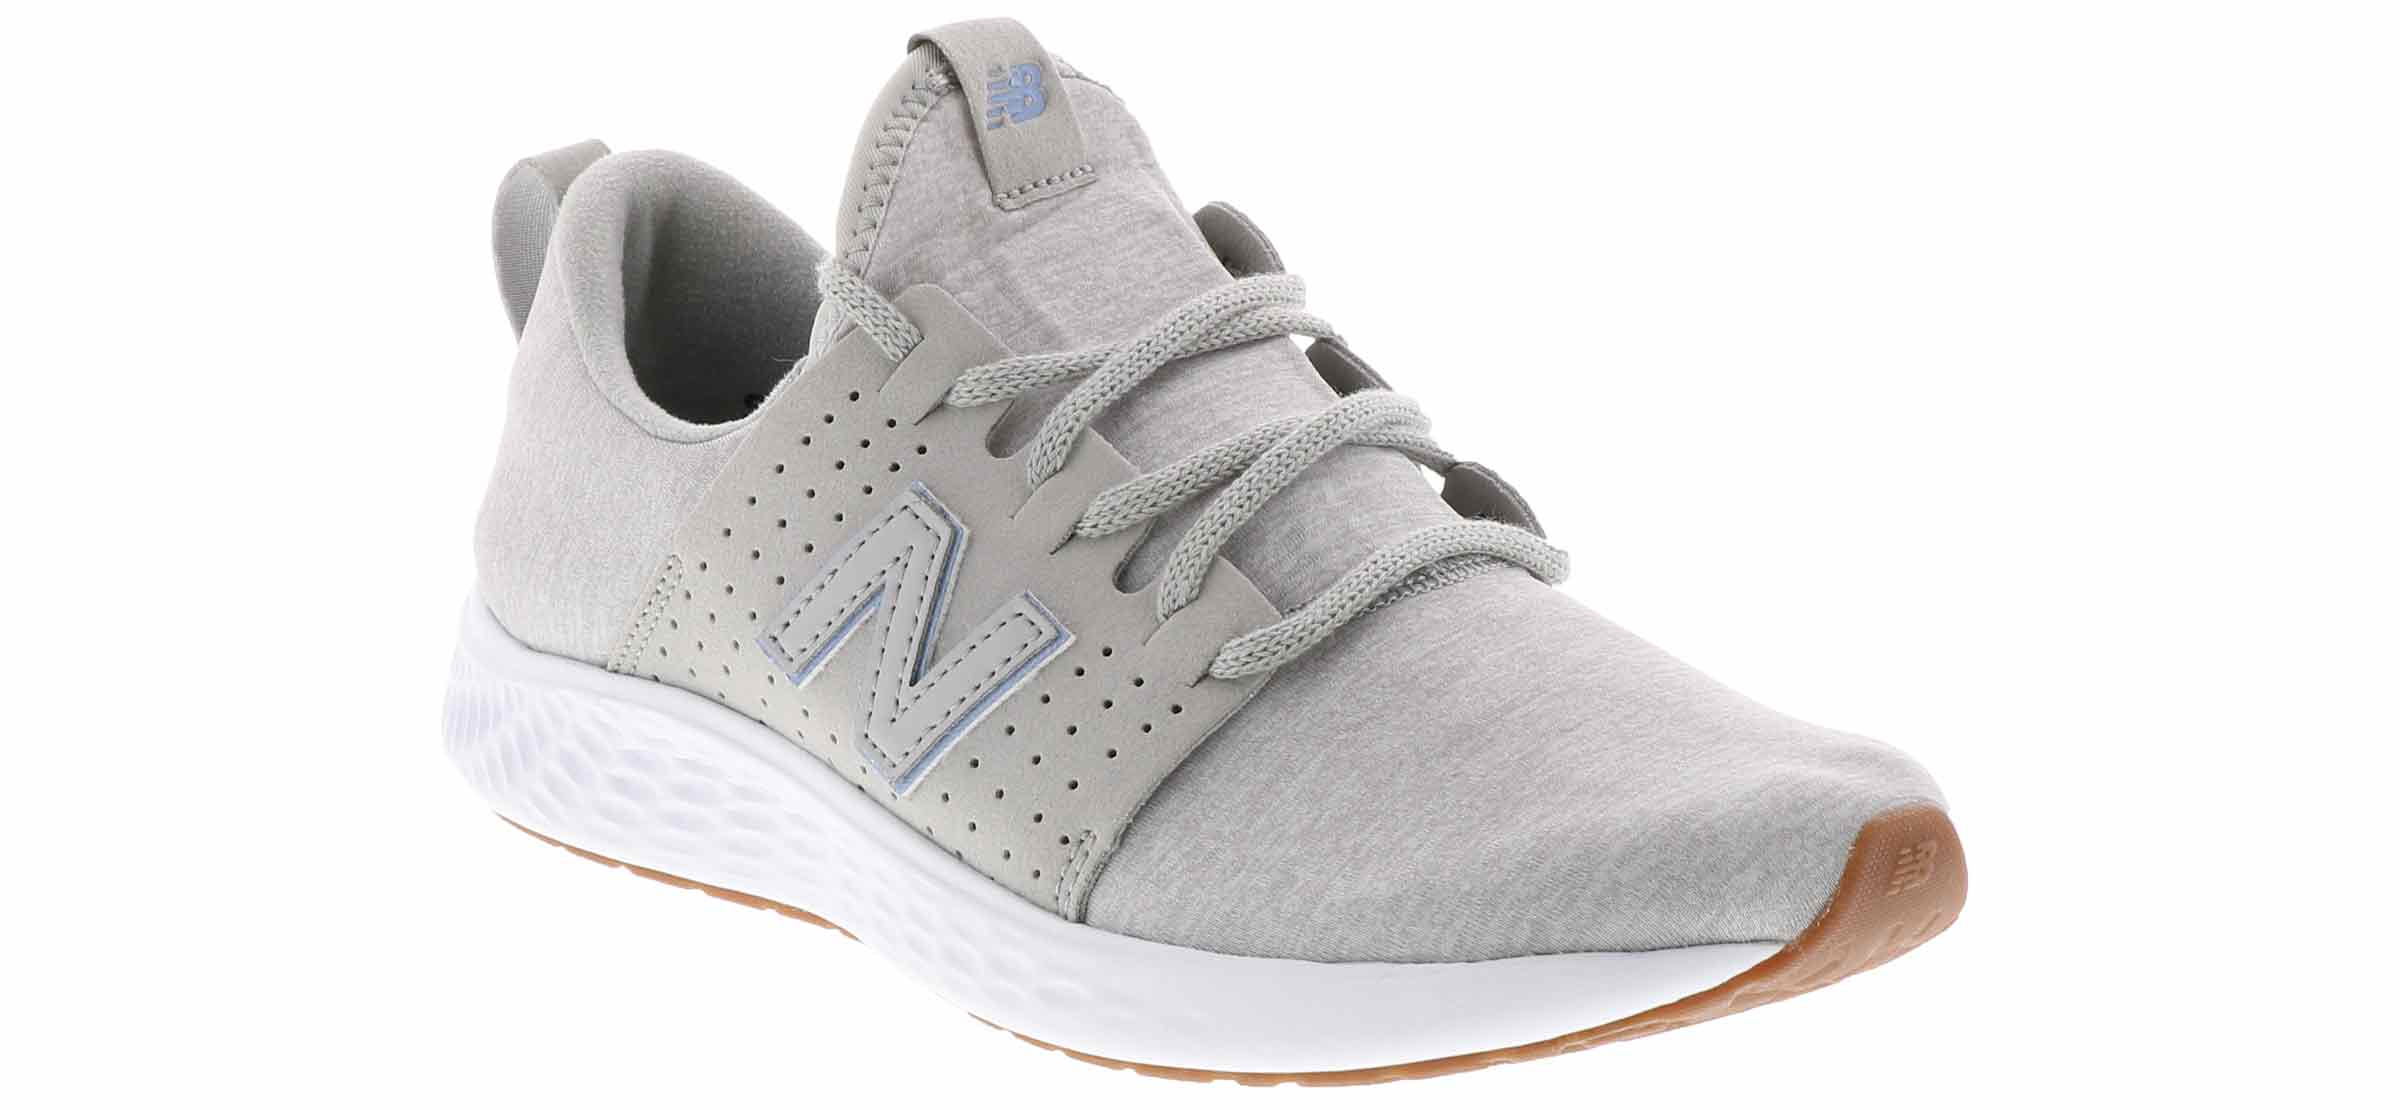 6ec6f428a2 Women's New Balance Fresh Foam Sport